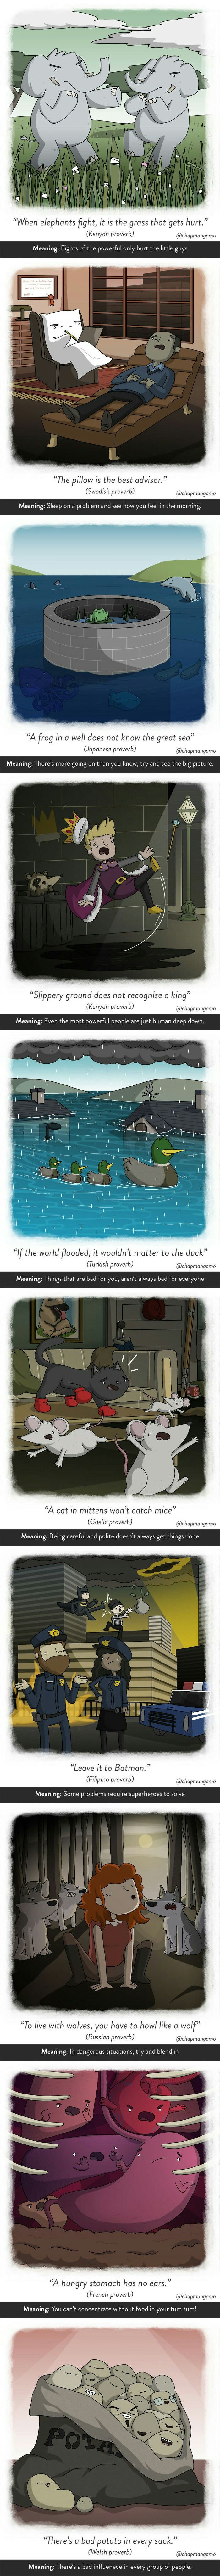 Weird sayings from around the world